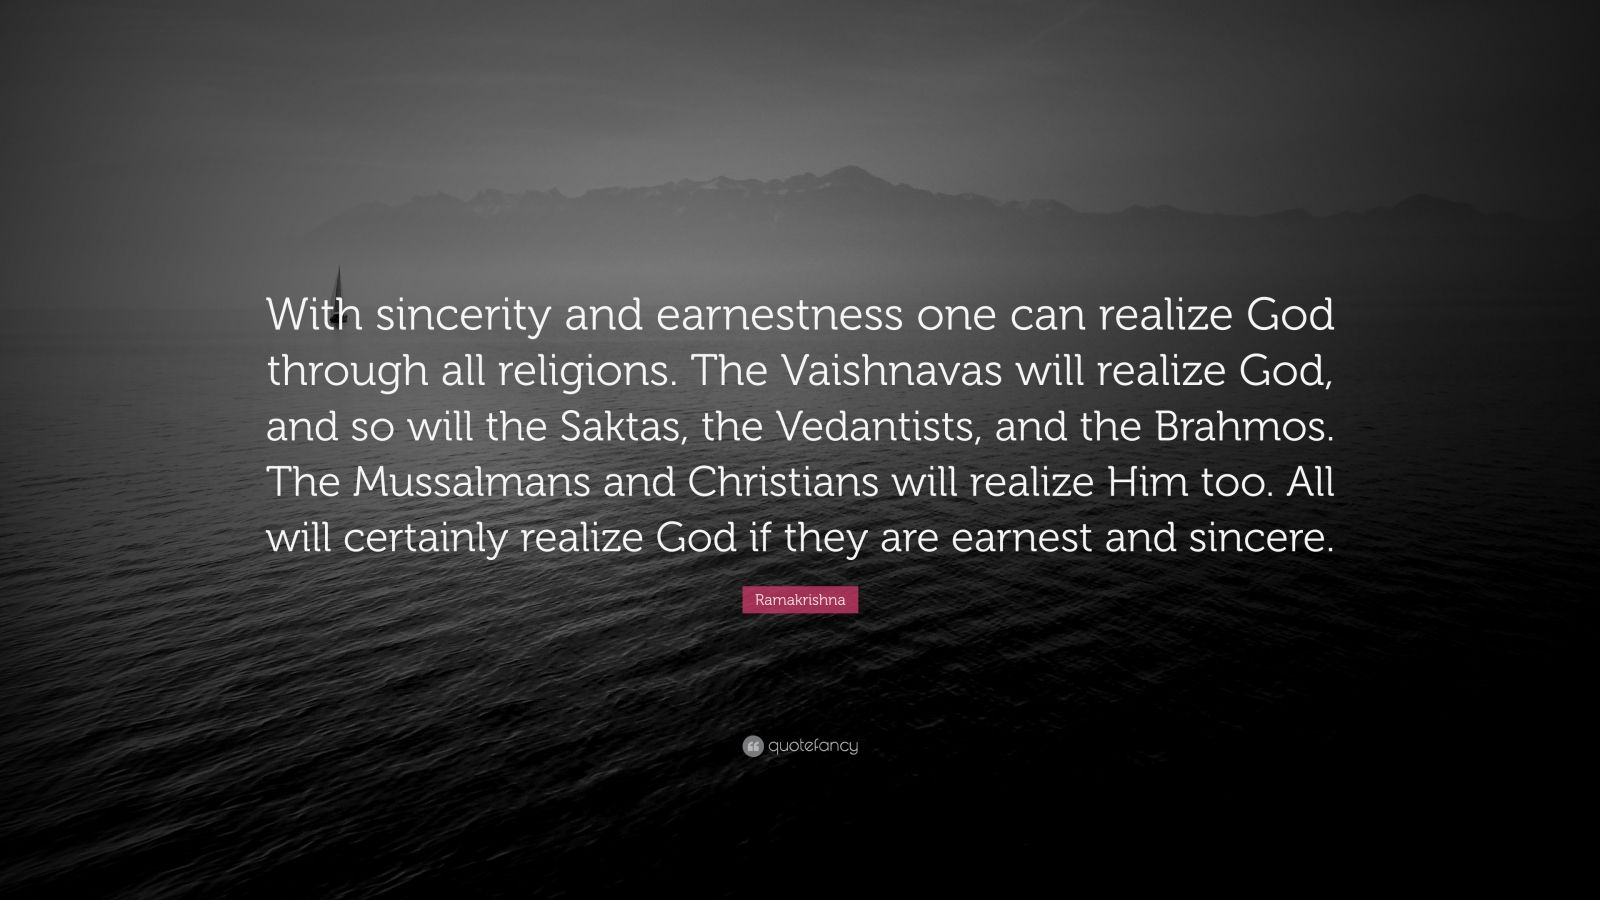 """Ramakrishna Quote: """"With sincerity and earnestness one can realize God through all religions. The Vaishnavas will realize God, and so will the Saktas, the Vedantists, and the Brahmos. The Mussalmans and Christians will realize Him too. All will certainly realize God if they are earnest and sincere."""""""